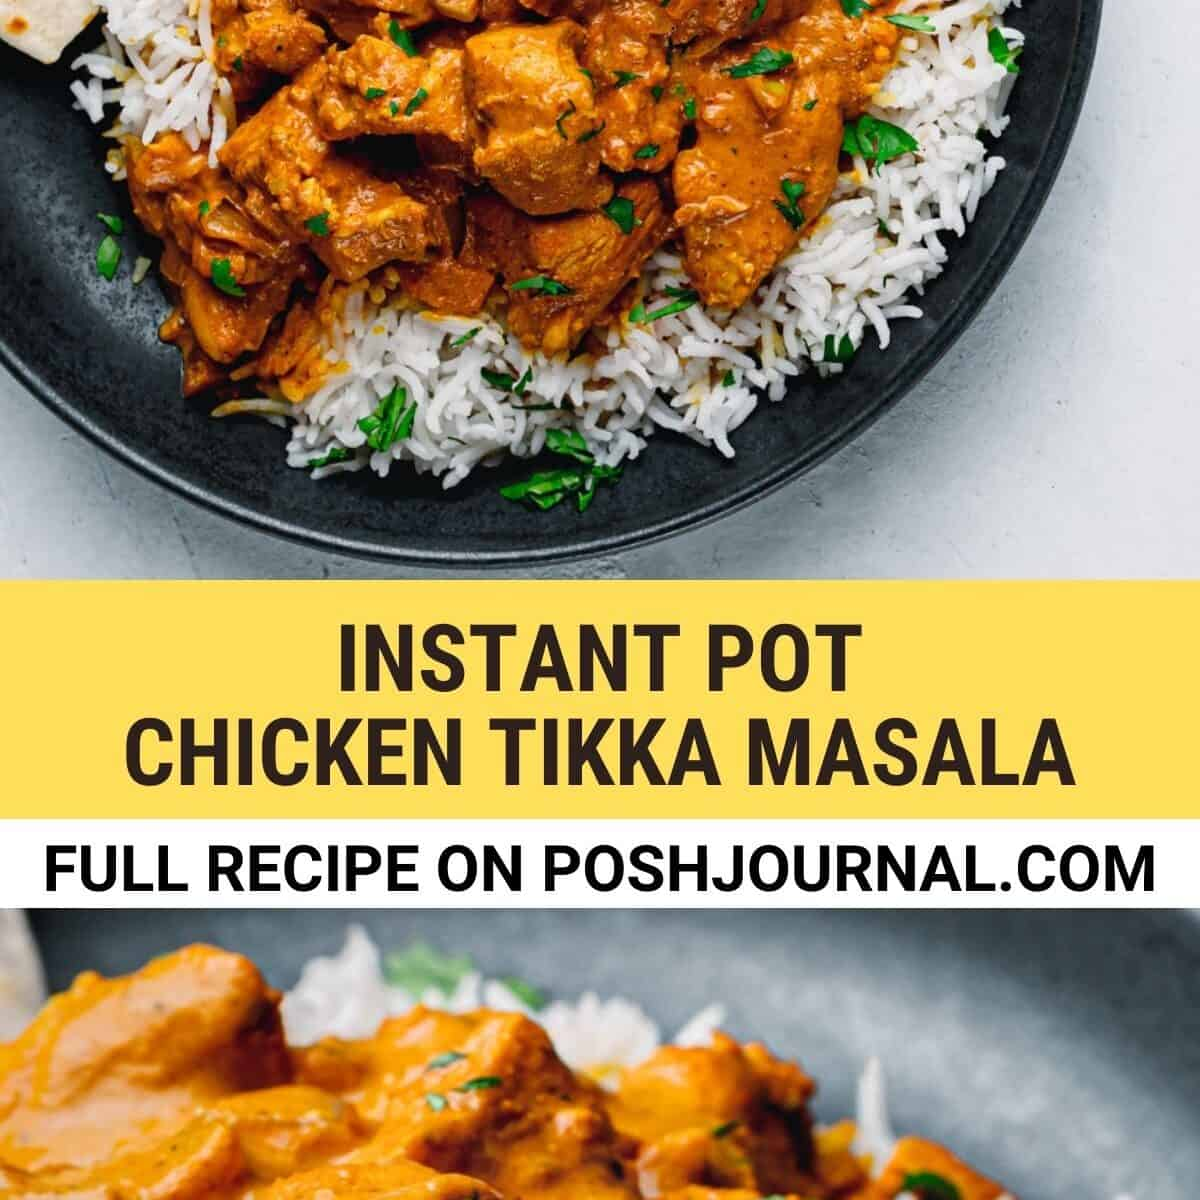 Instant Pot Chicken Tikka Masala Recipe Pinterest.